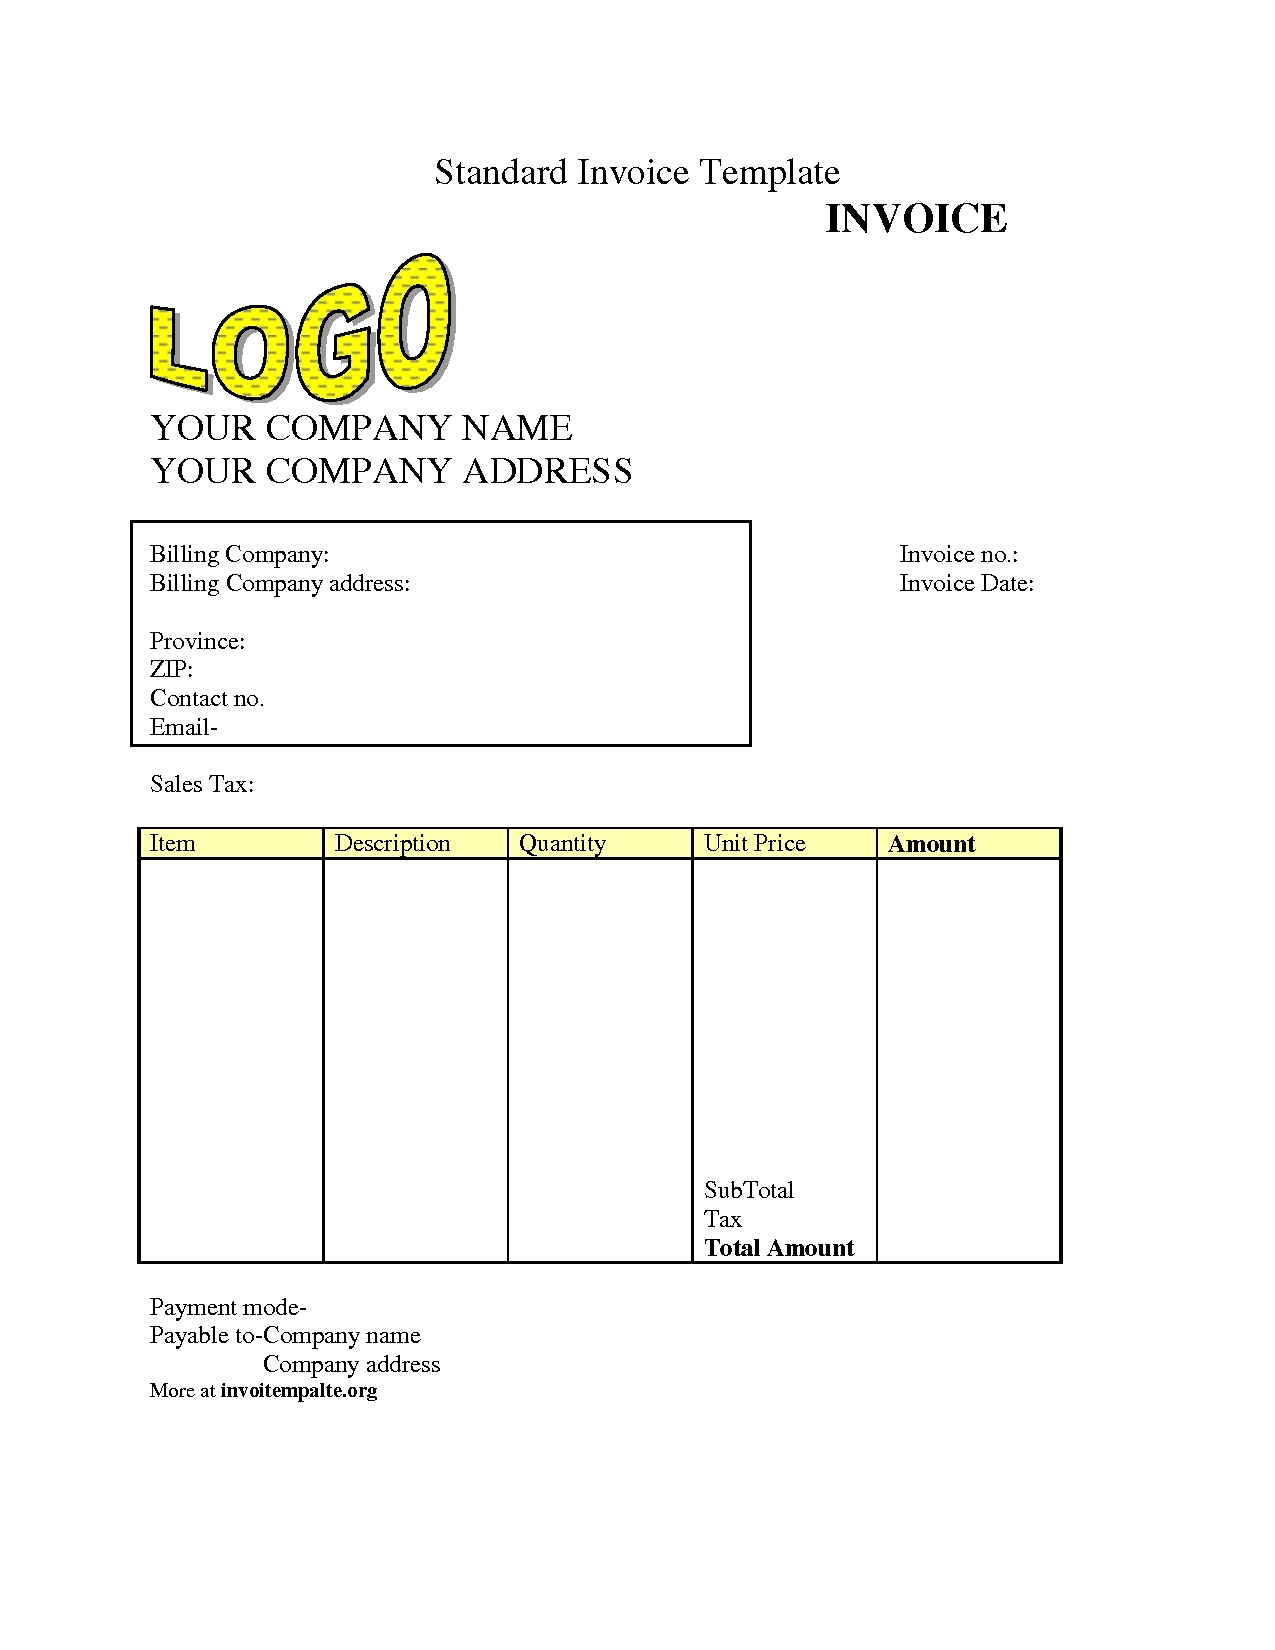 free invoices templates free invoices template invoice template free 2016 1275 X 1650